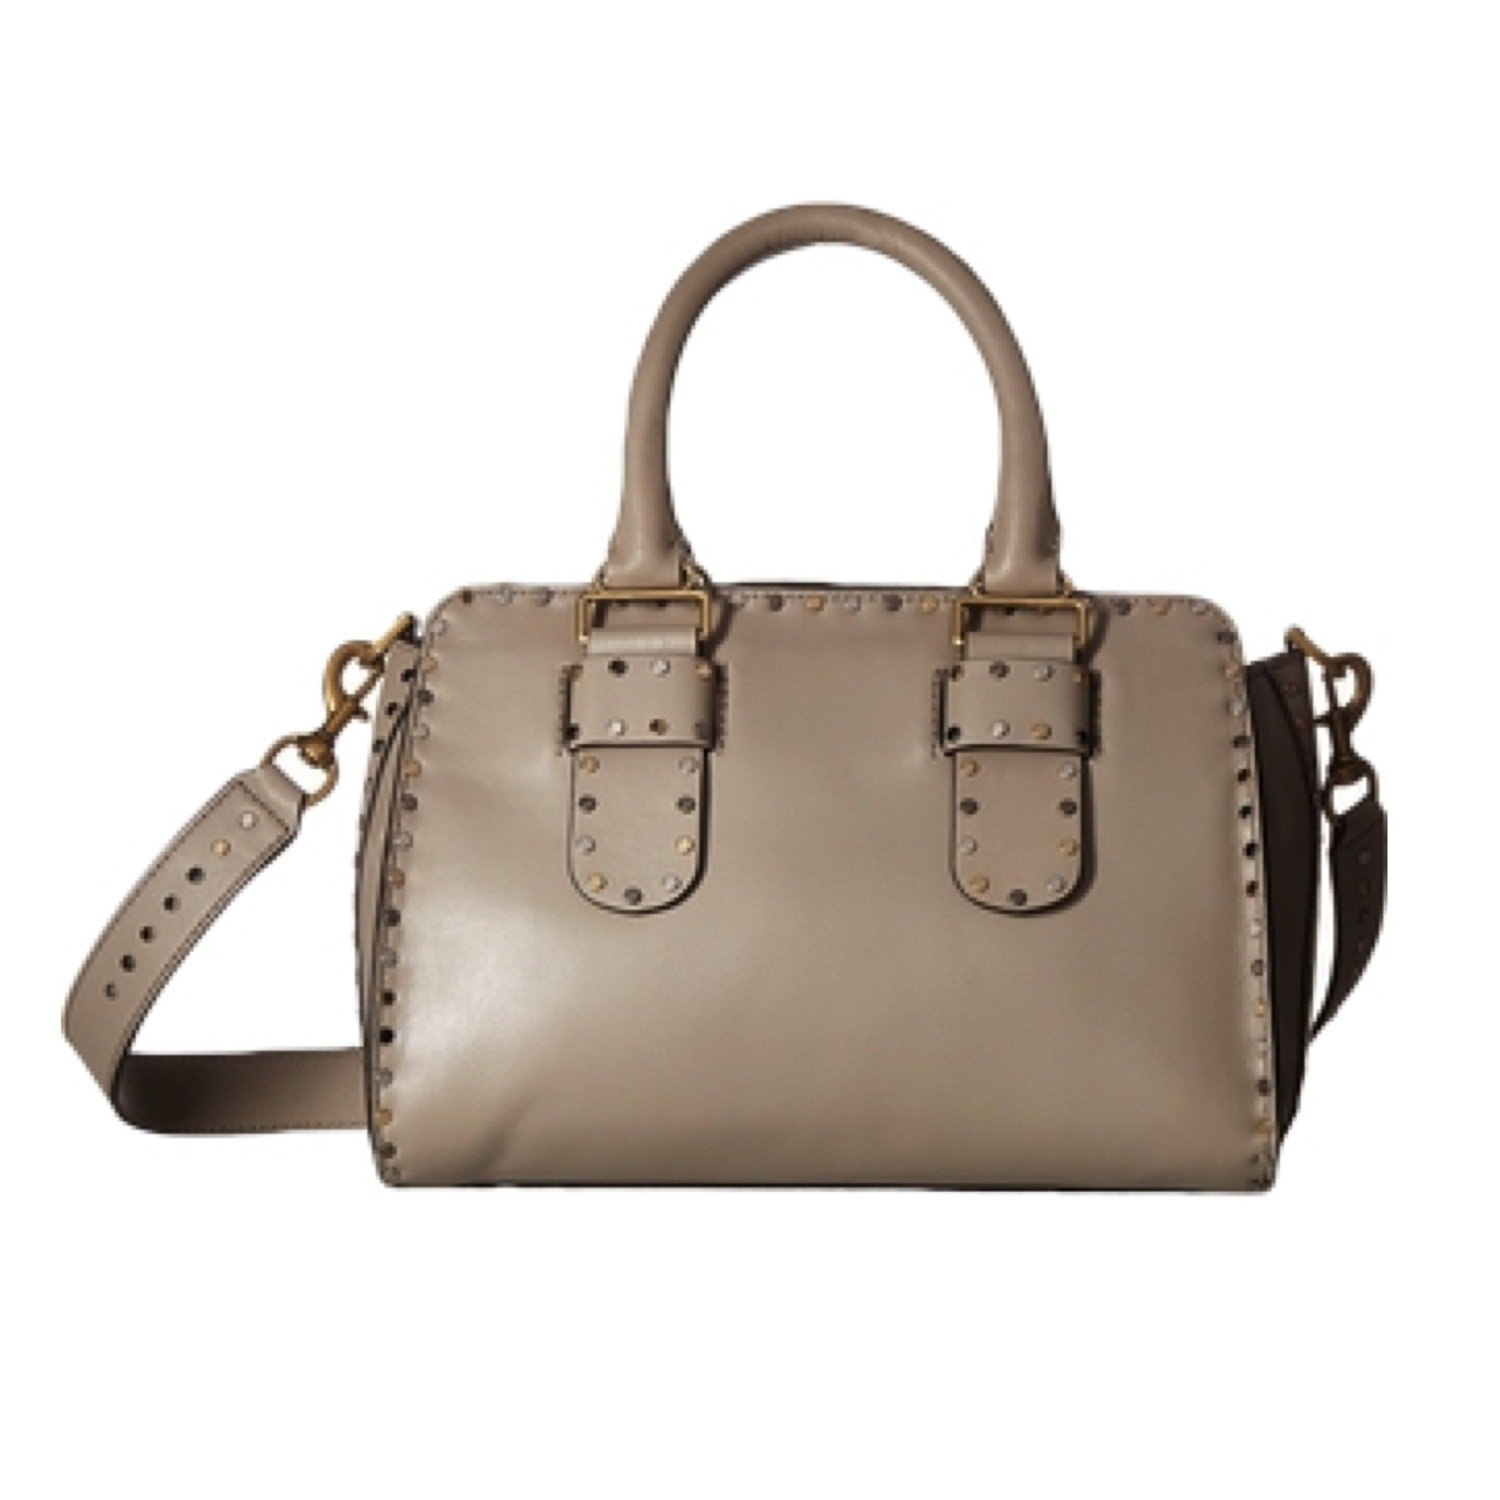 REBECCA MINKOFF • Midnighter Handbag  Large Satchel - Taupe